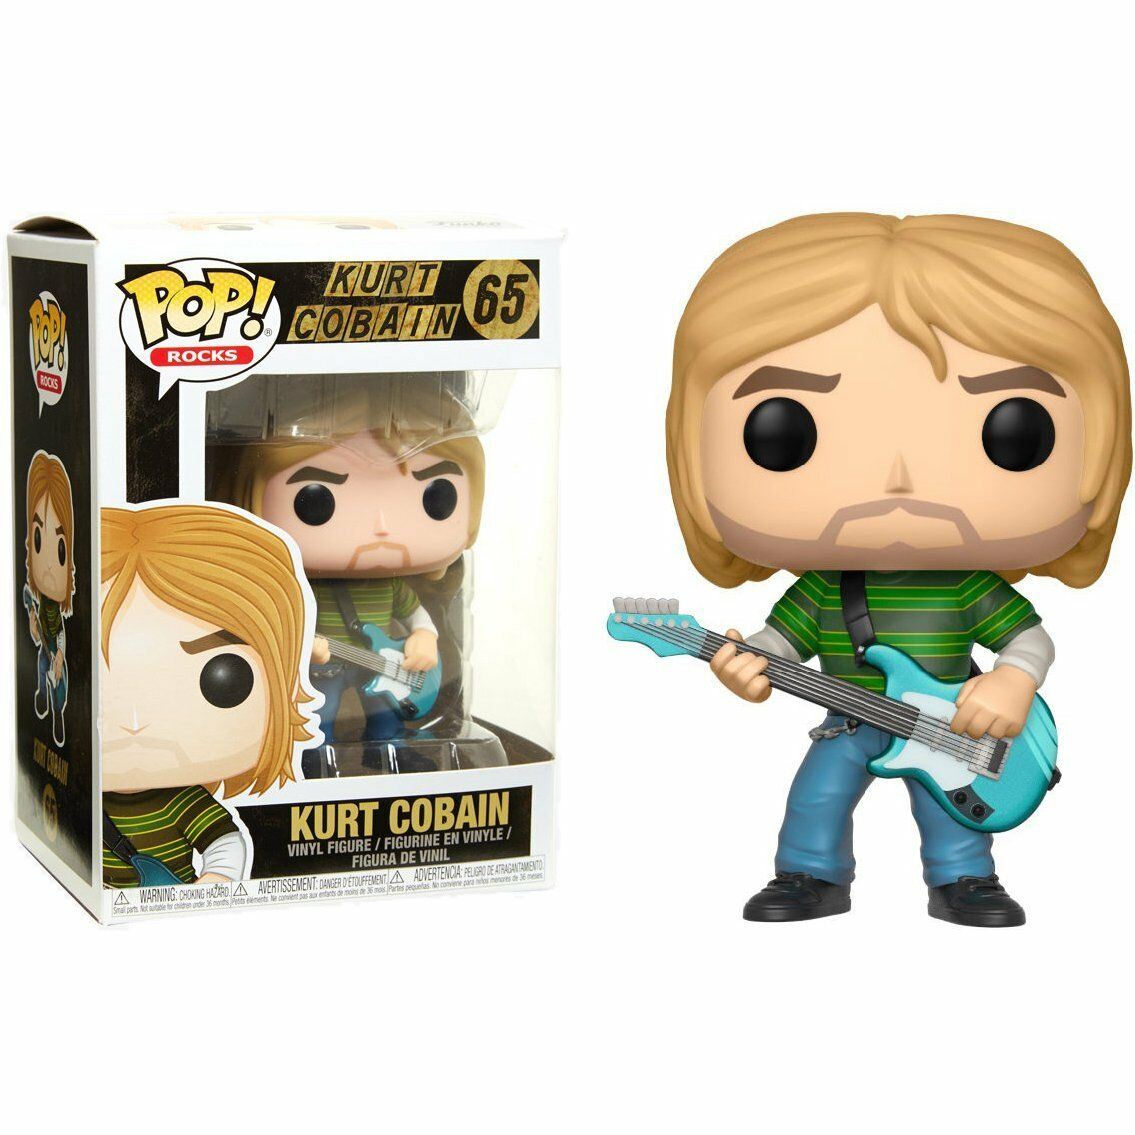 Official Funko pop Music: Kurt Cobain (Teen Spirit) Vinyl Action Figure Collectible Model Toy with Original Box